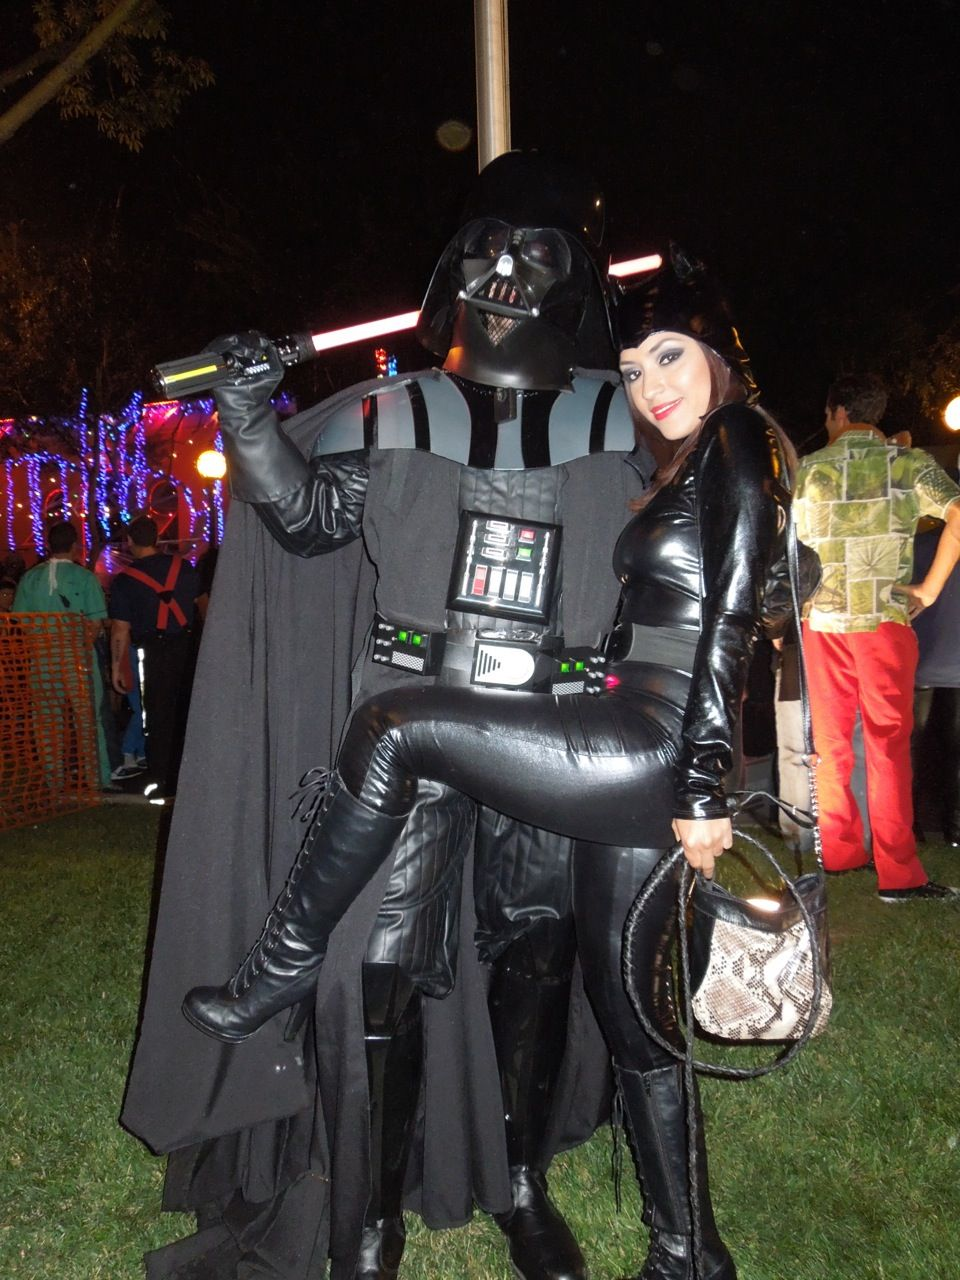 westhollywoodhalloweendarthvaderjpg 9601280 - Halloween Darth Vader